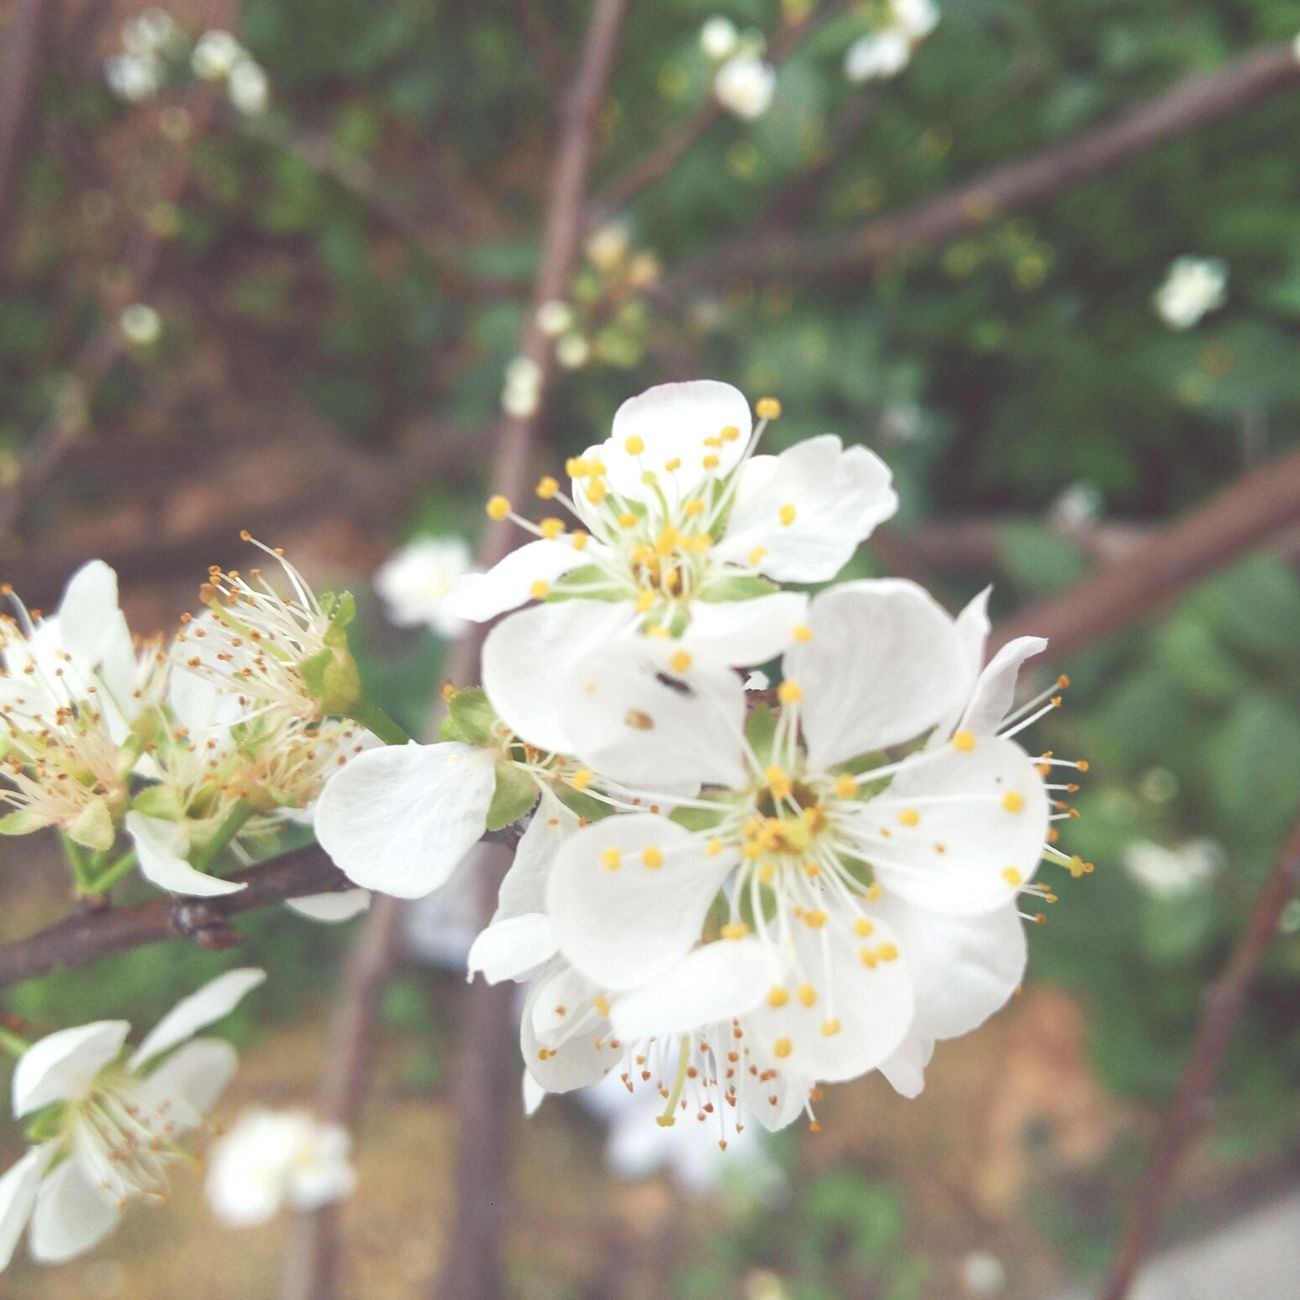 Nature Growth Flower Beauty In Nature Flower Head Plant Blossom Close-up Freshness Pear White Color Freshness Beauty In Nature Beautiful Day - Zhuhai China